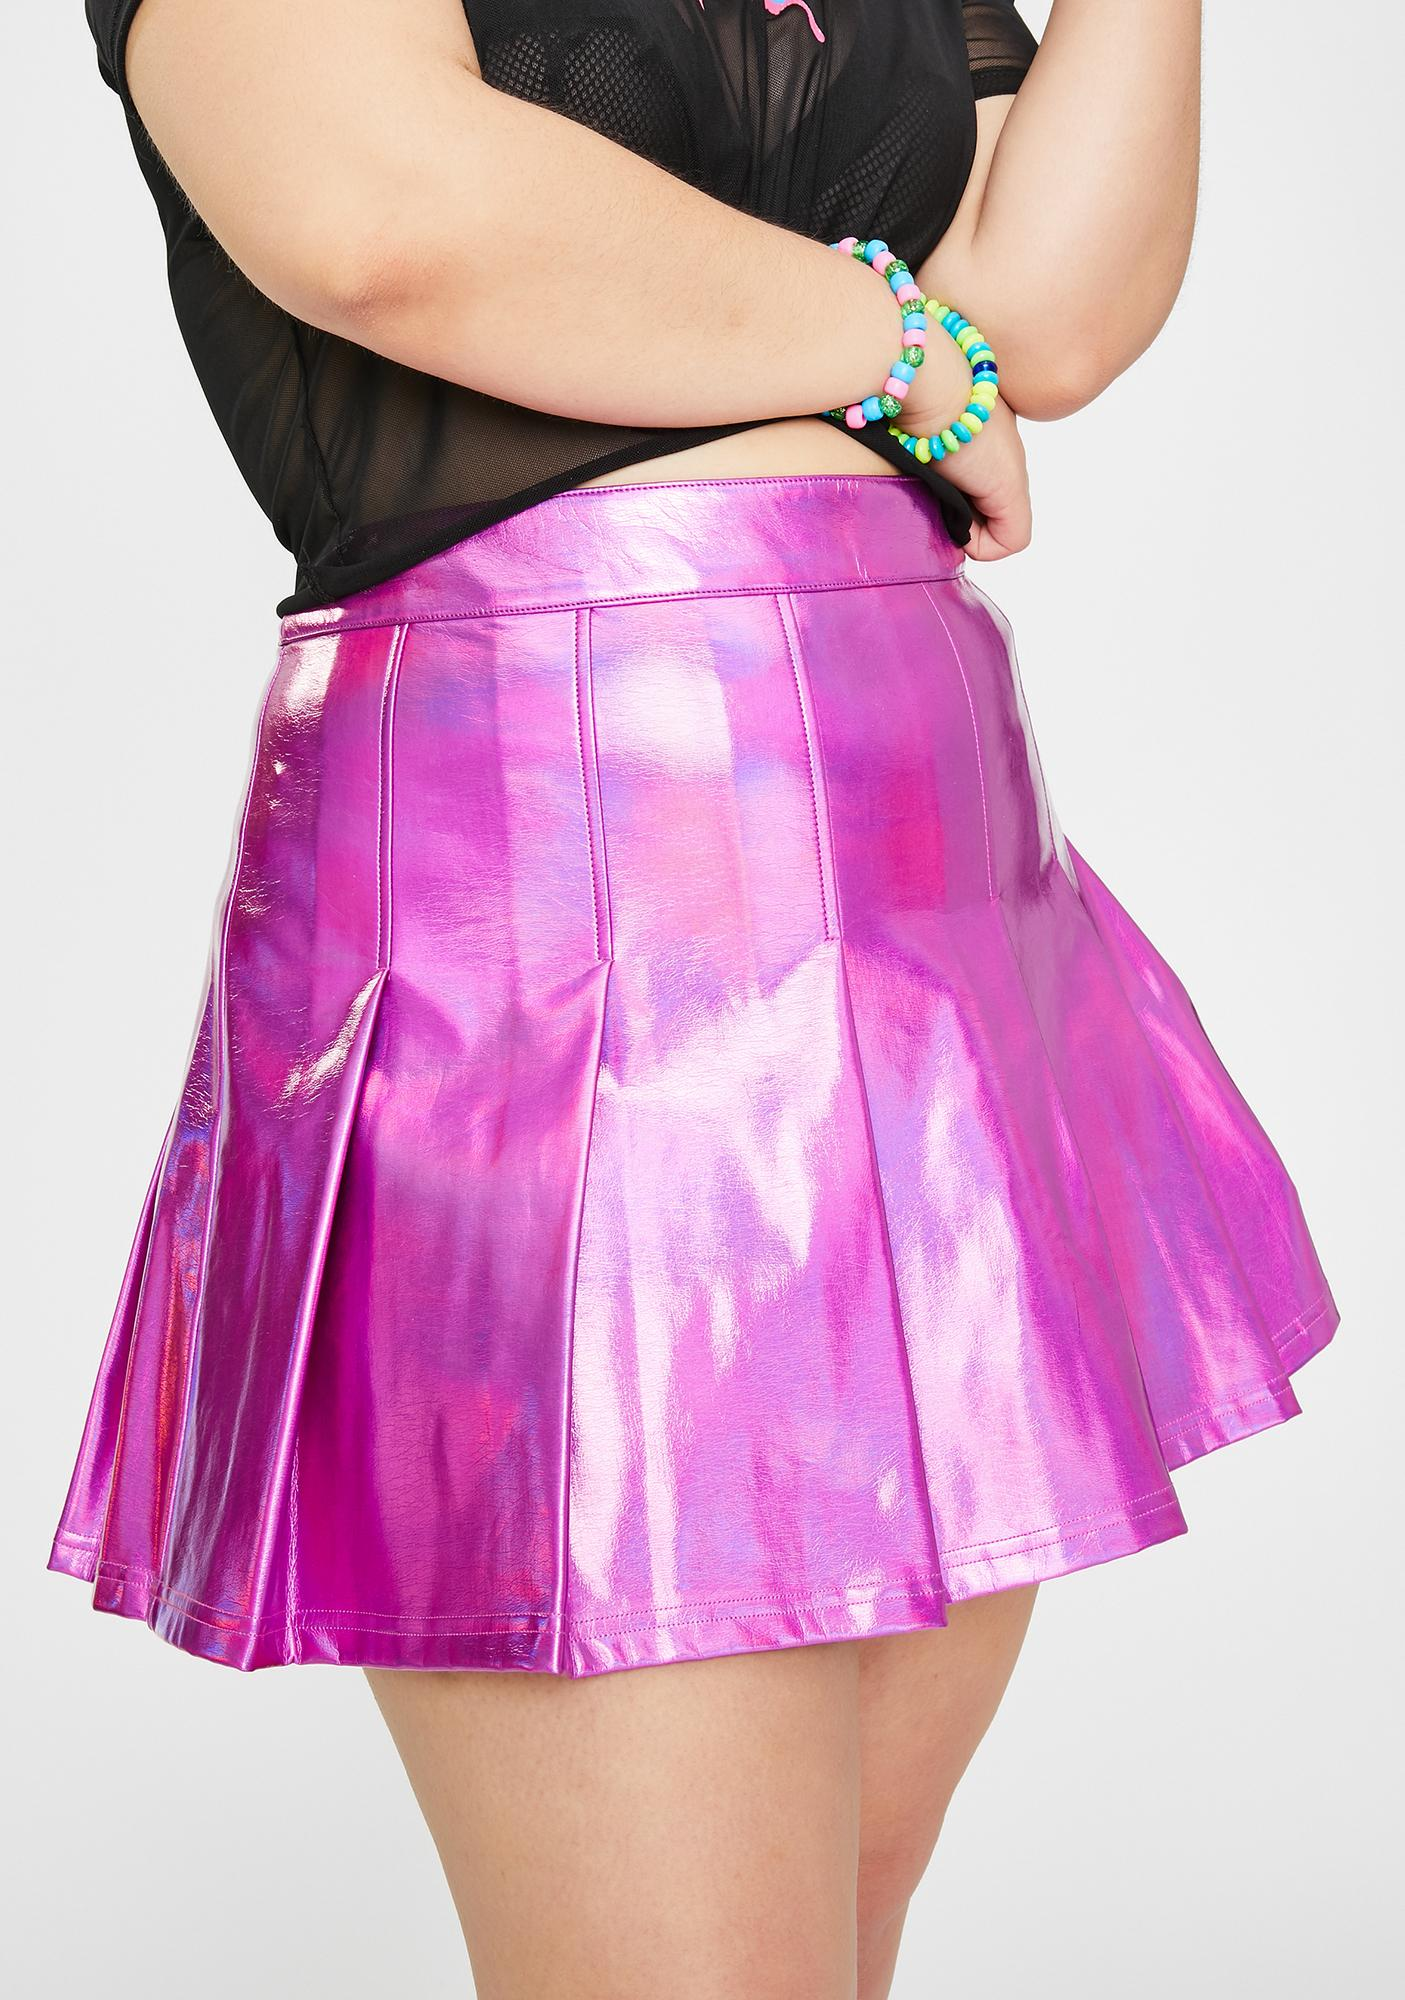 Club Exx Her Starlight Fantasy Pleated Skirt